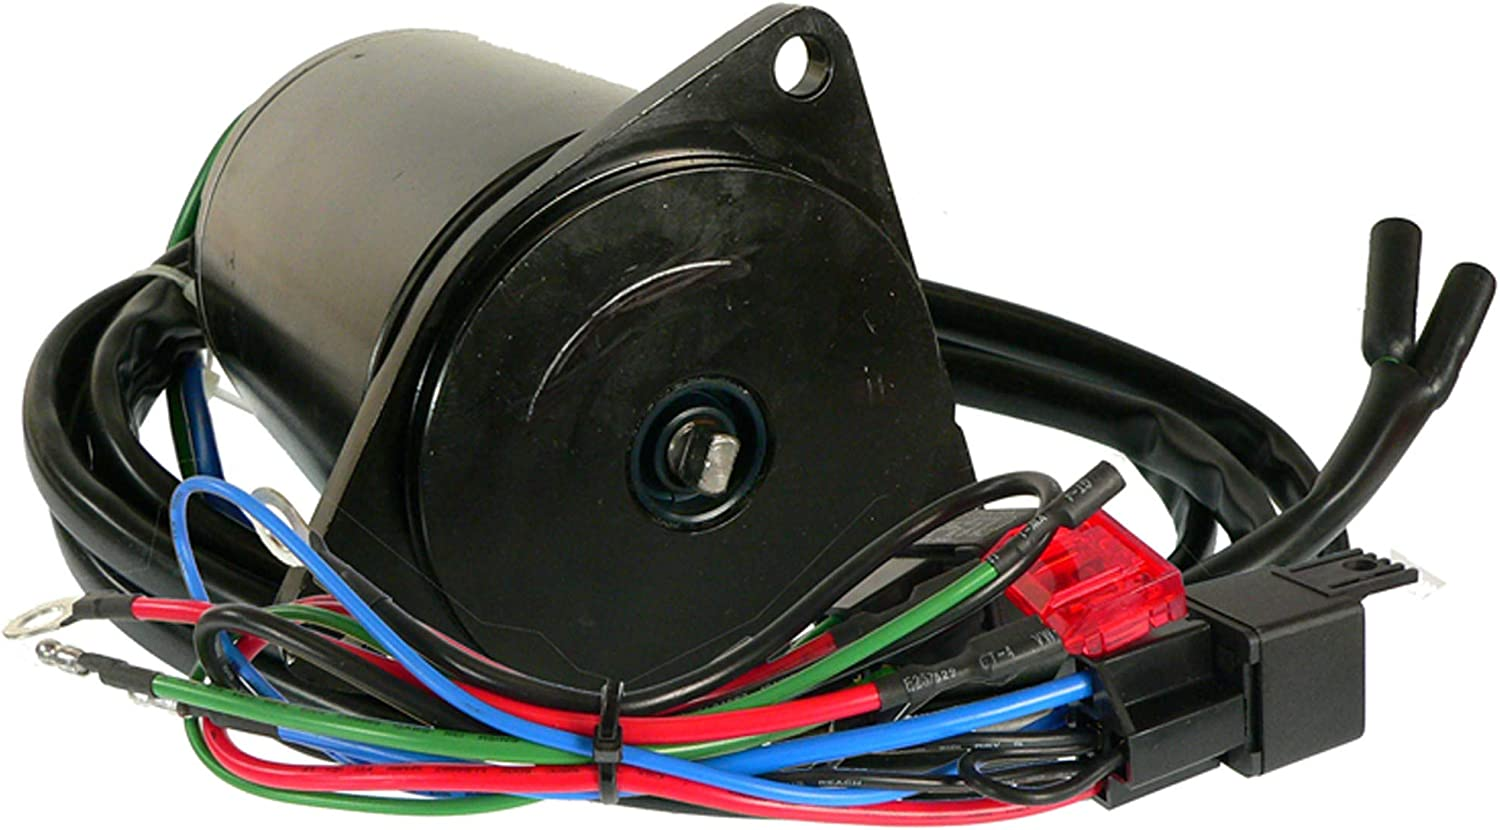 DB Electrical 430-22146 Power Tilt Trim Motor Compatible With/Replacement For Yamaha 50-115HP /6H1-43880-00-00 /PT609NM